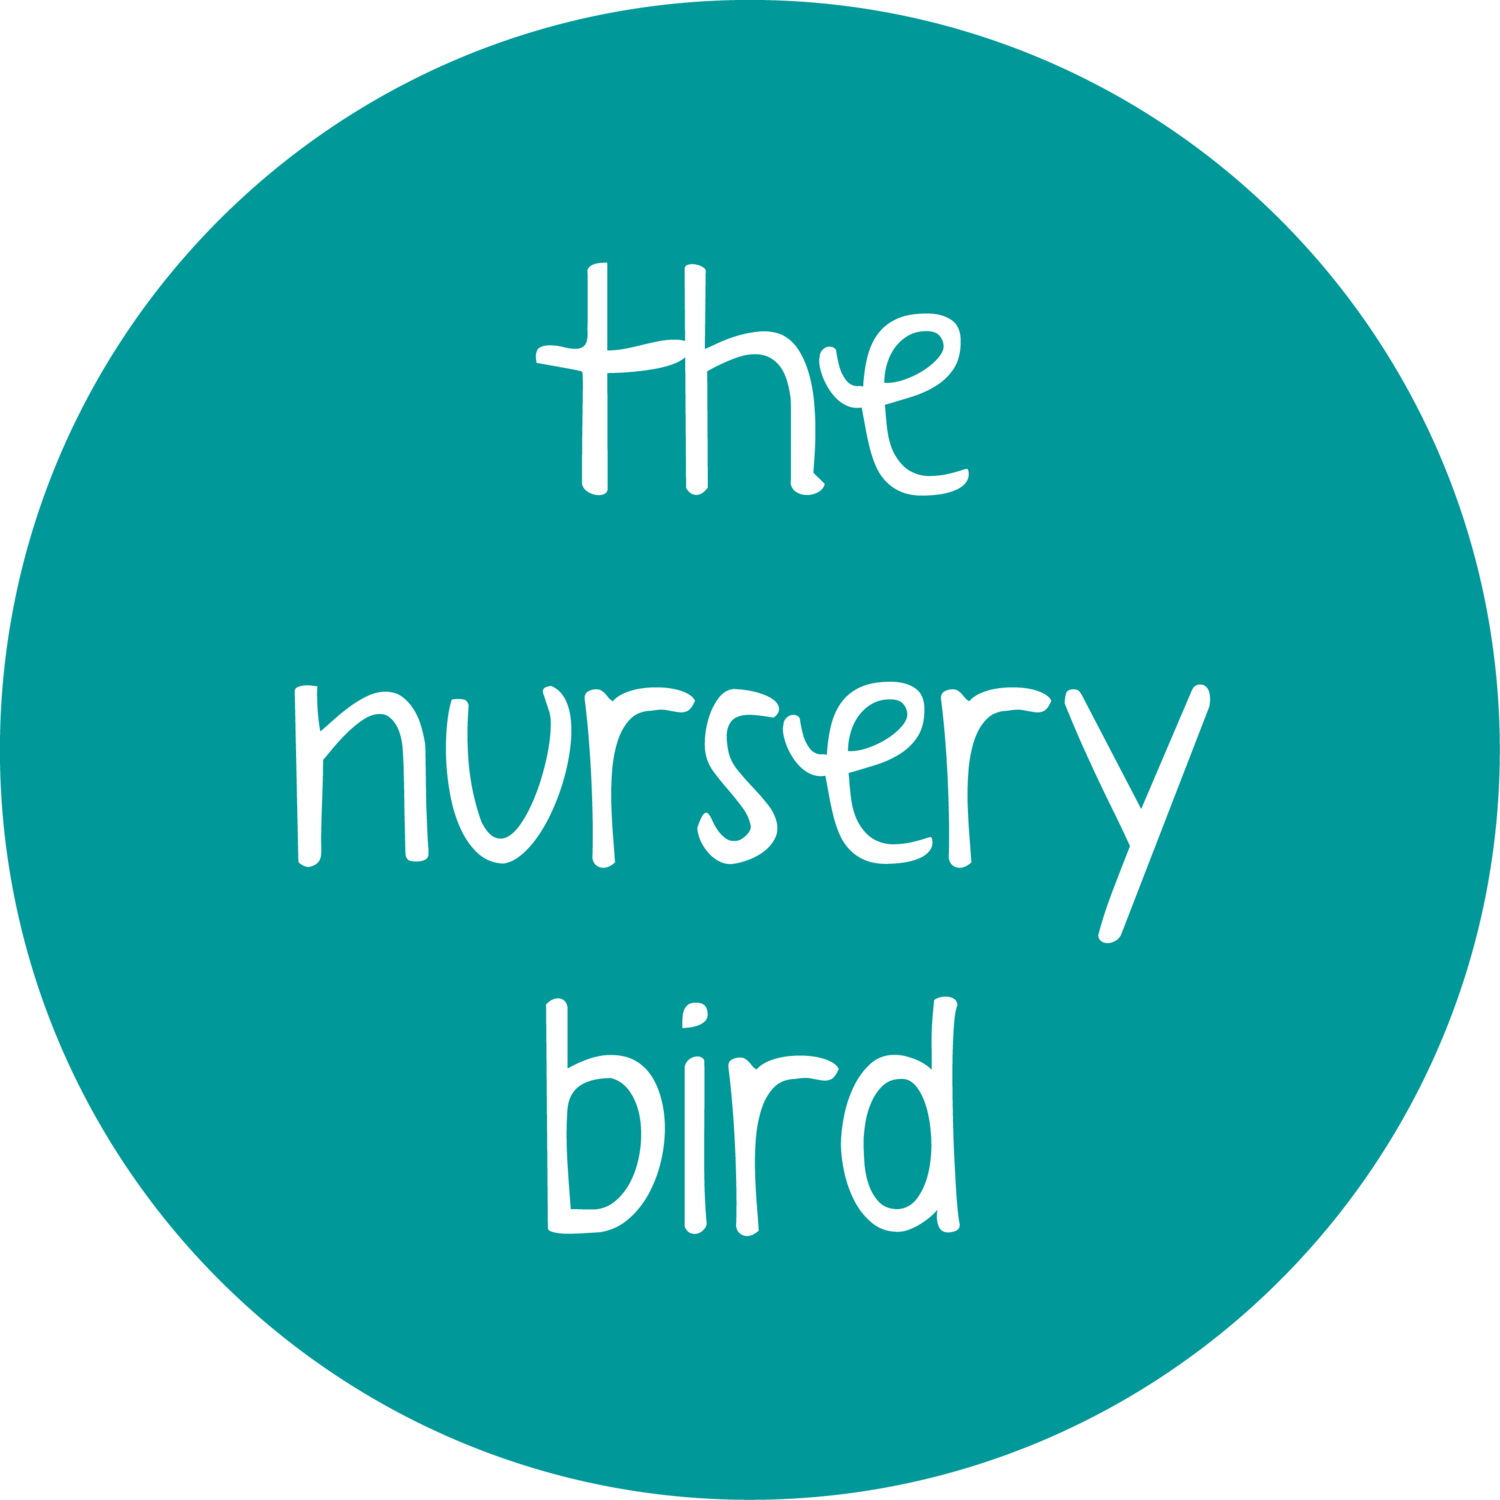 the nursery bird